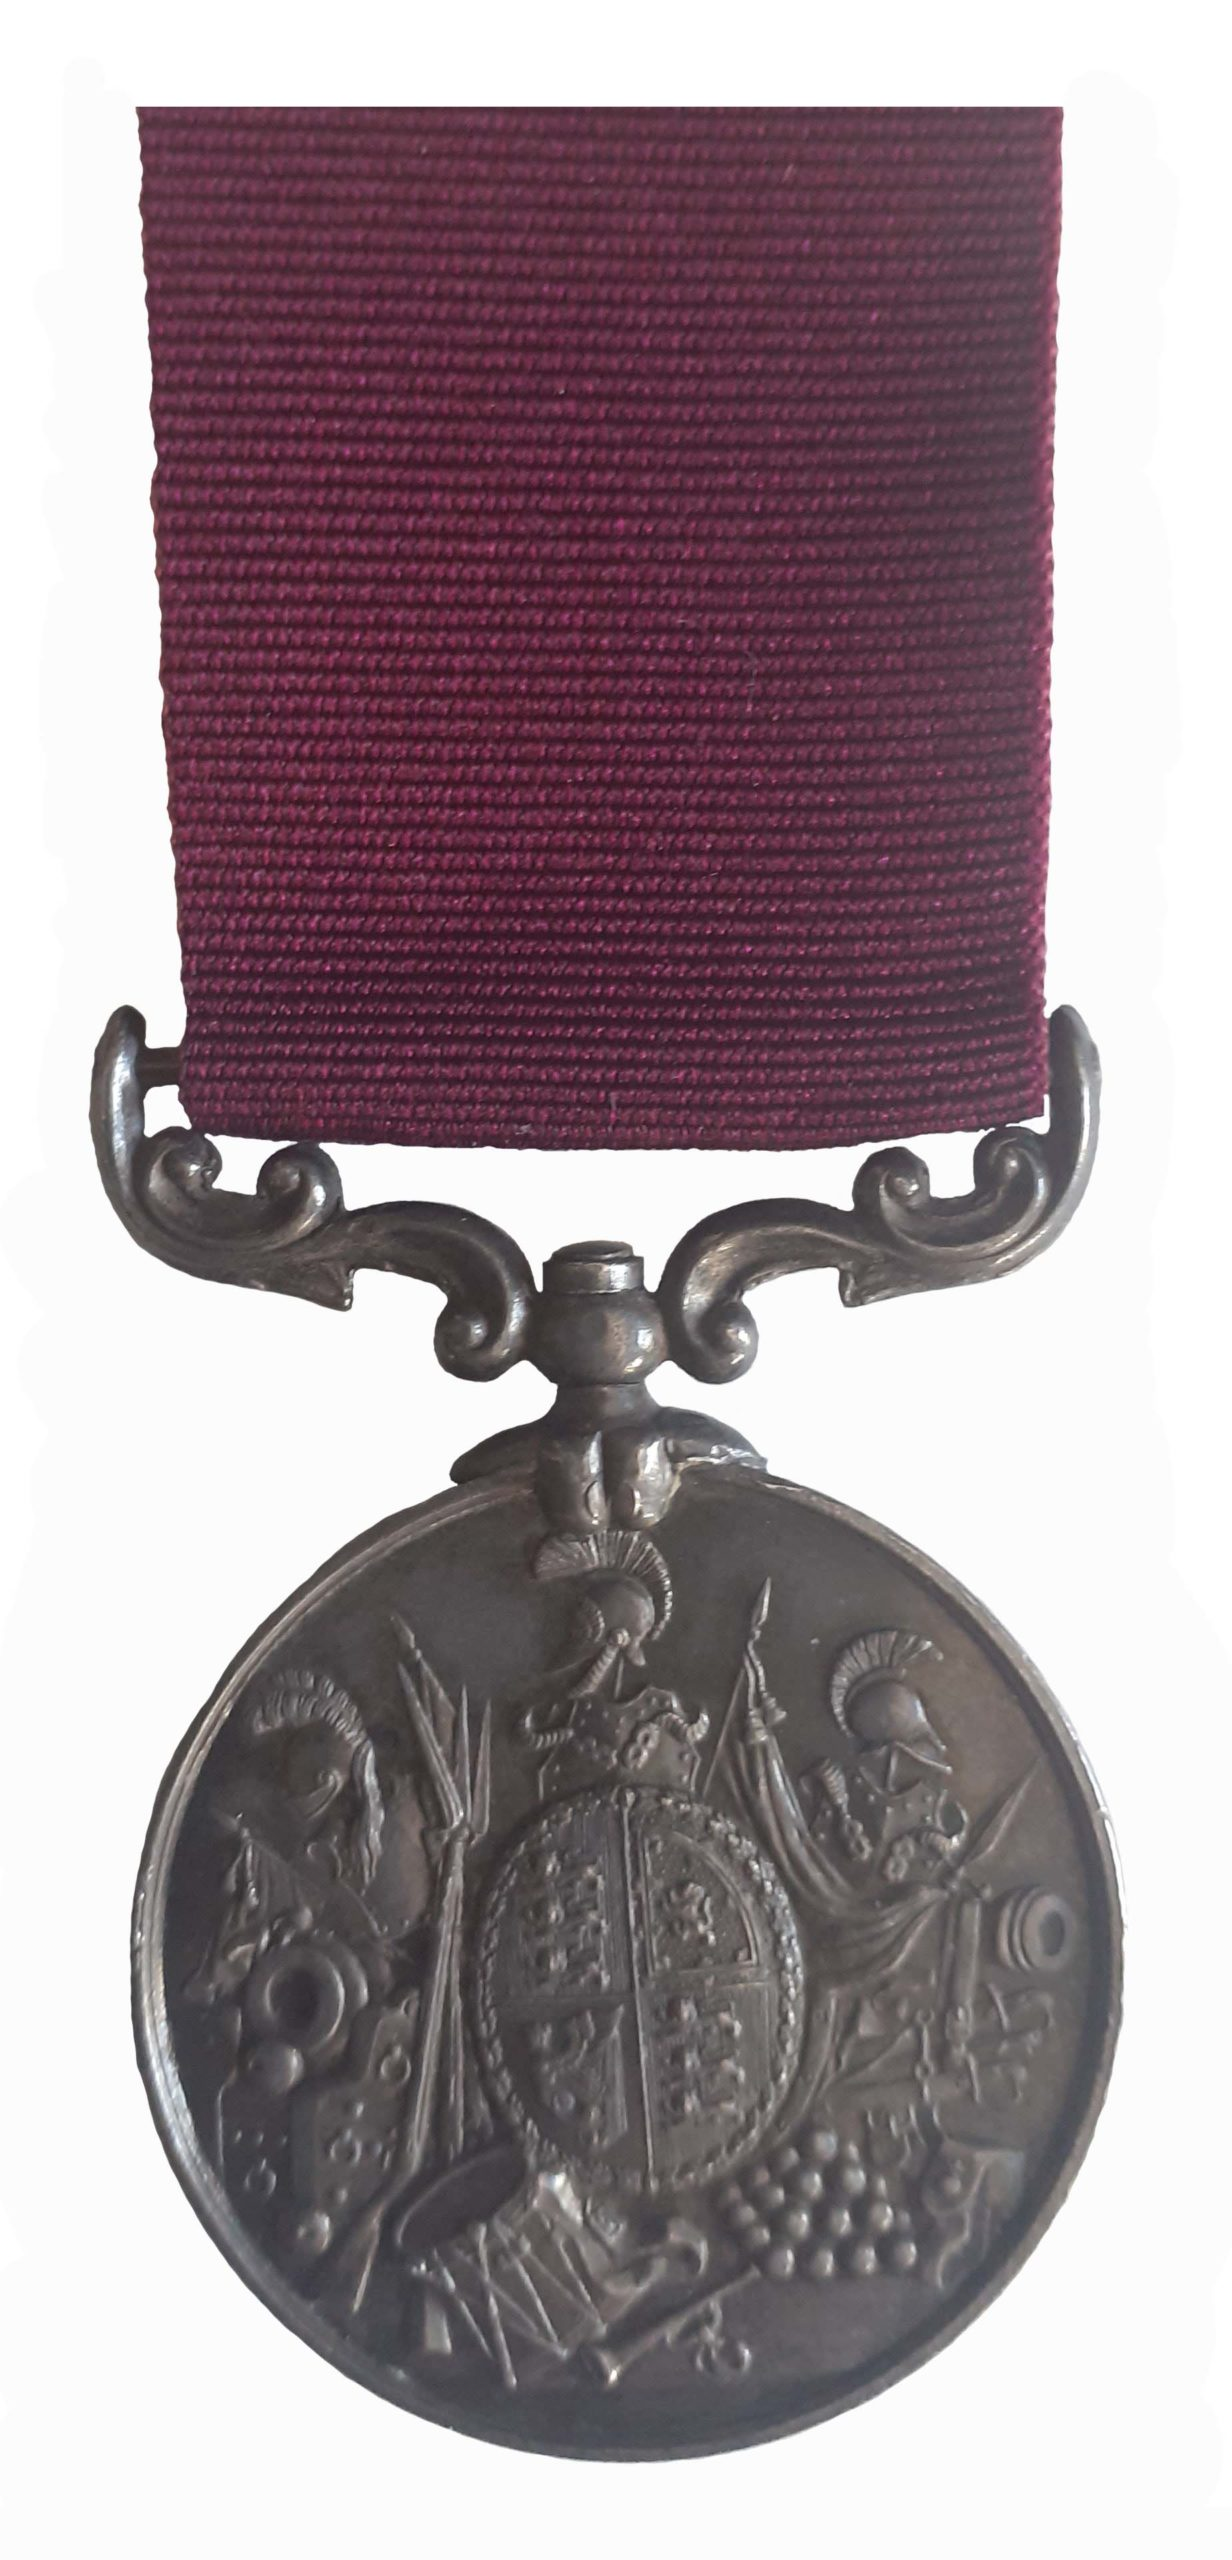 Long Service & Good Conduct Medal, QVR, to Troop Sergeant Major Ephraim Thomas